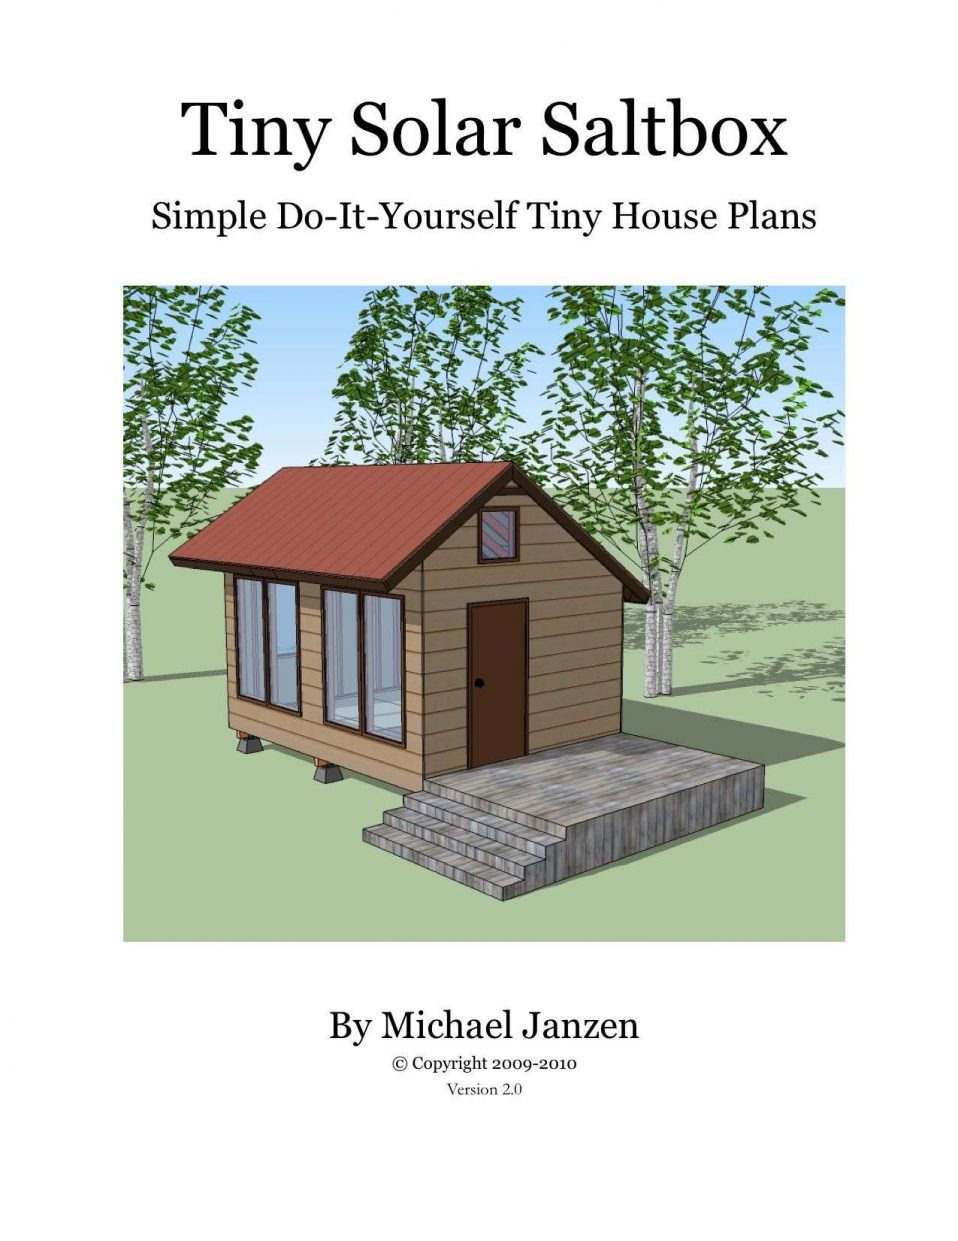 Saltbox House Pictures New Home and Interior Ideas Saltbox House Floor Plan